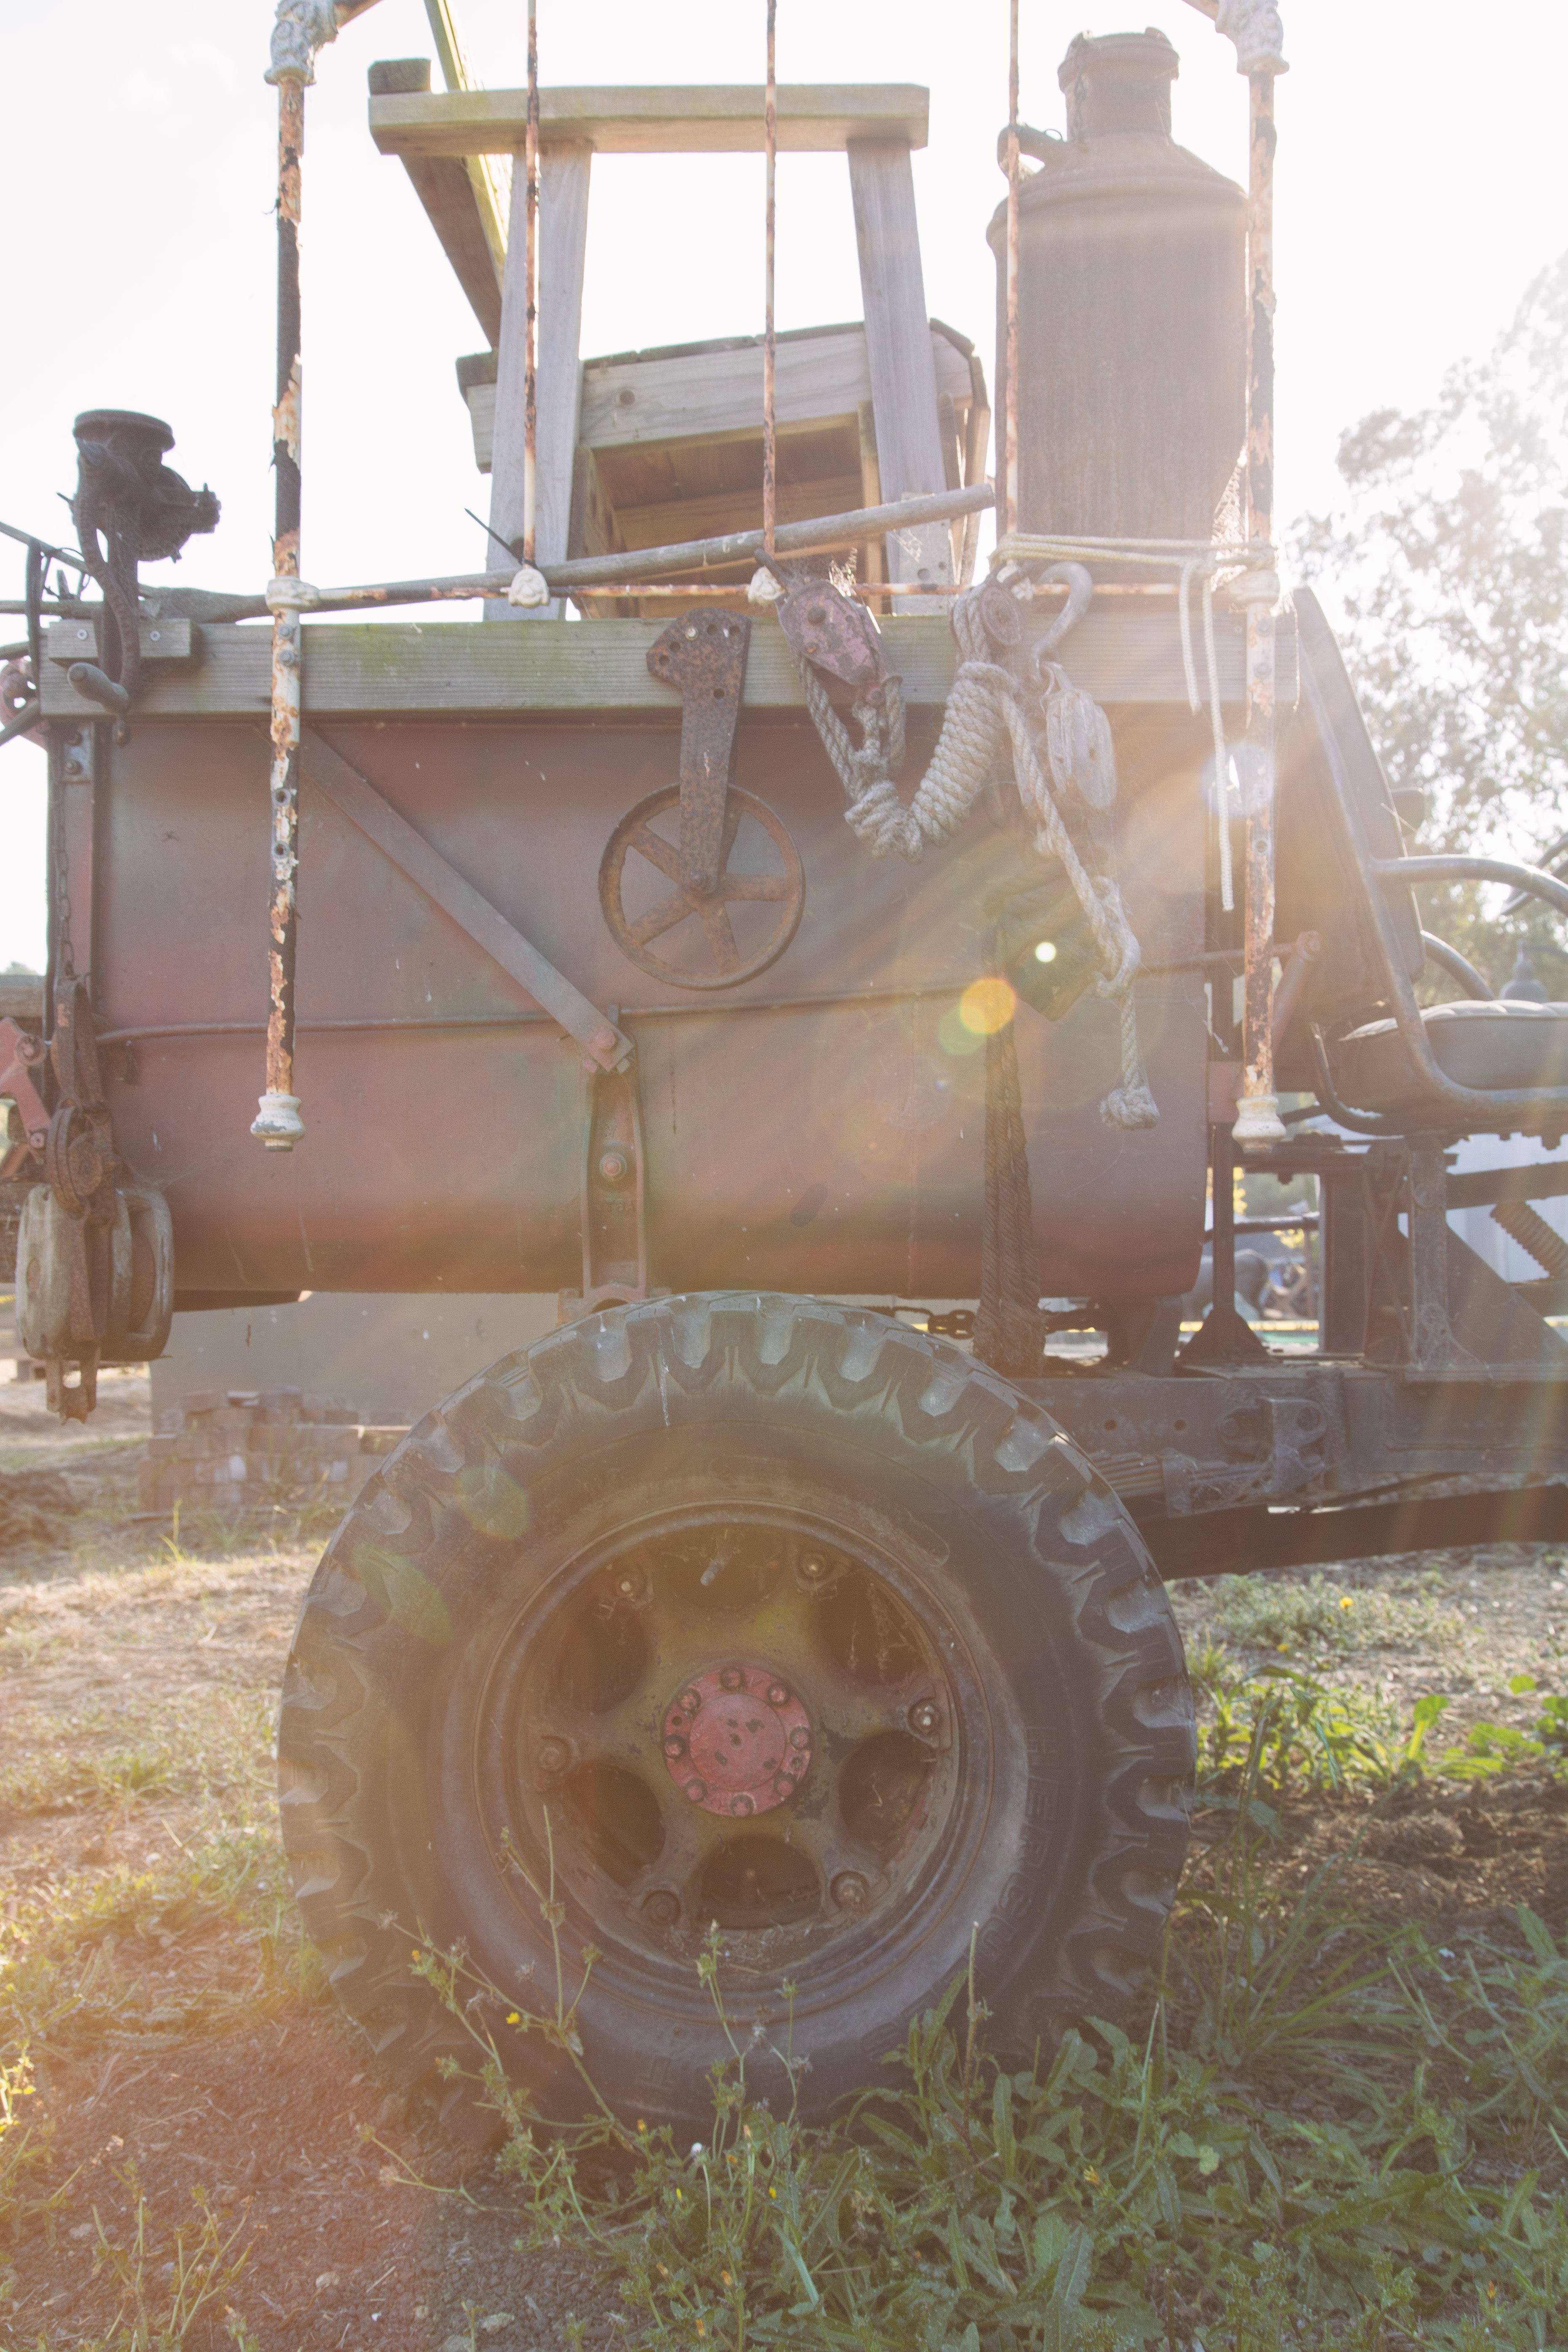 Rusty tractor truck with sun flare